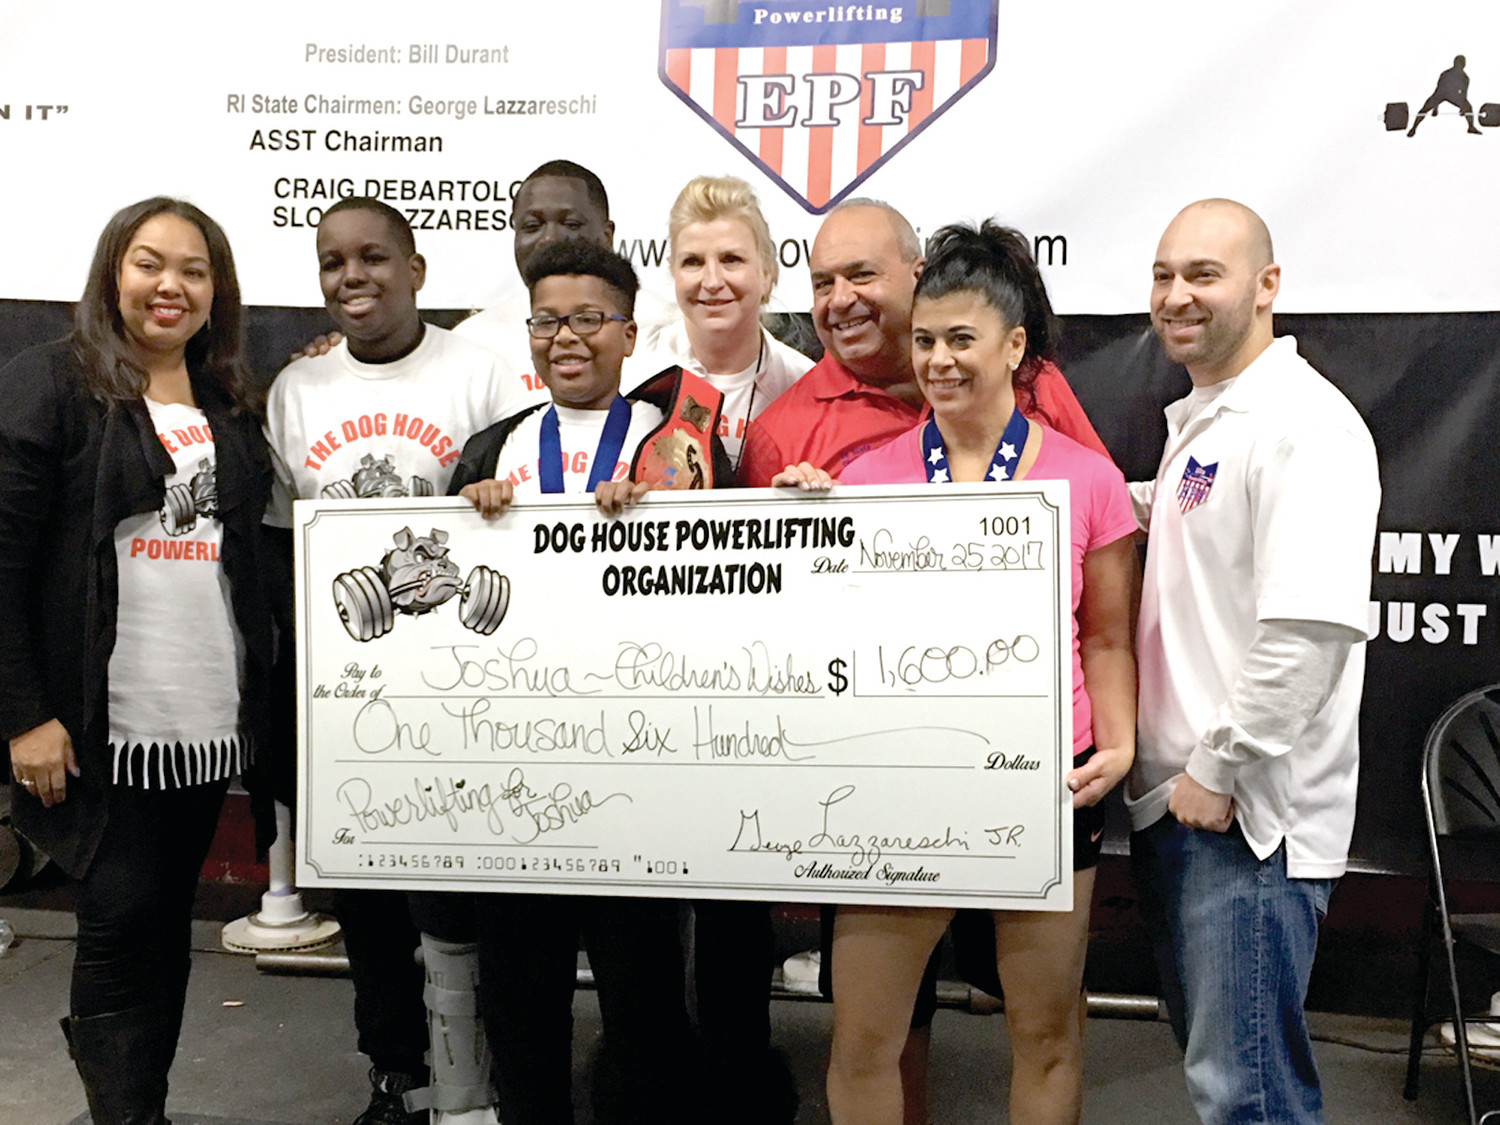 SUPER SCENE: Officials from The Dog House Powerlifting Organization and Children's Wishes were all smiles back in November, 2017 after an event raised $1,600 for Joshua Jean Louis, an 11-year-old who has a serious heart condition.